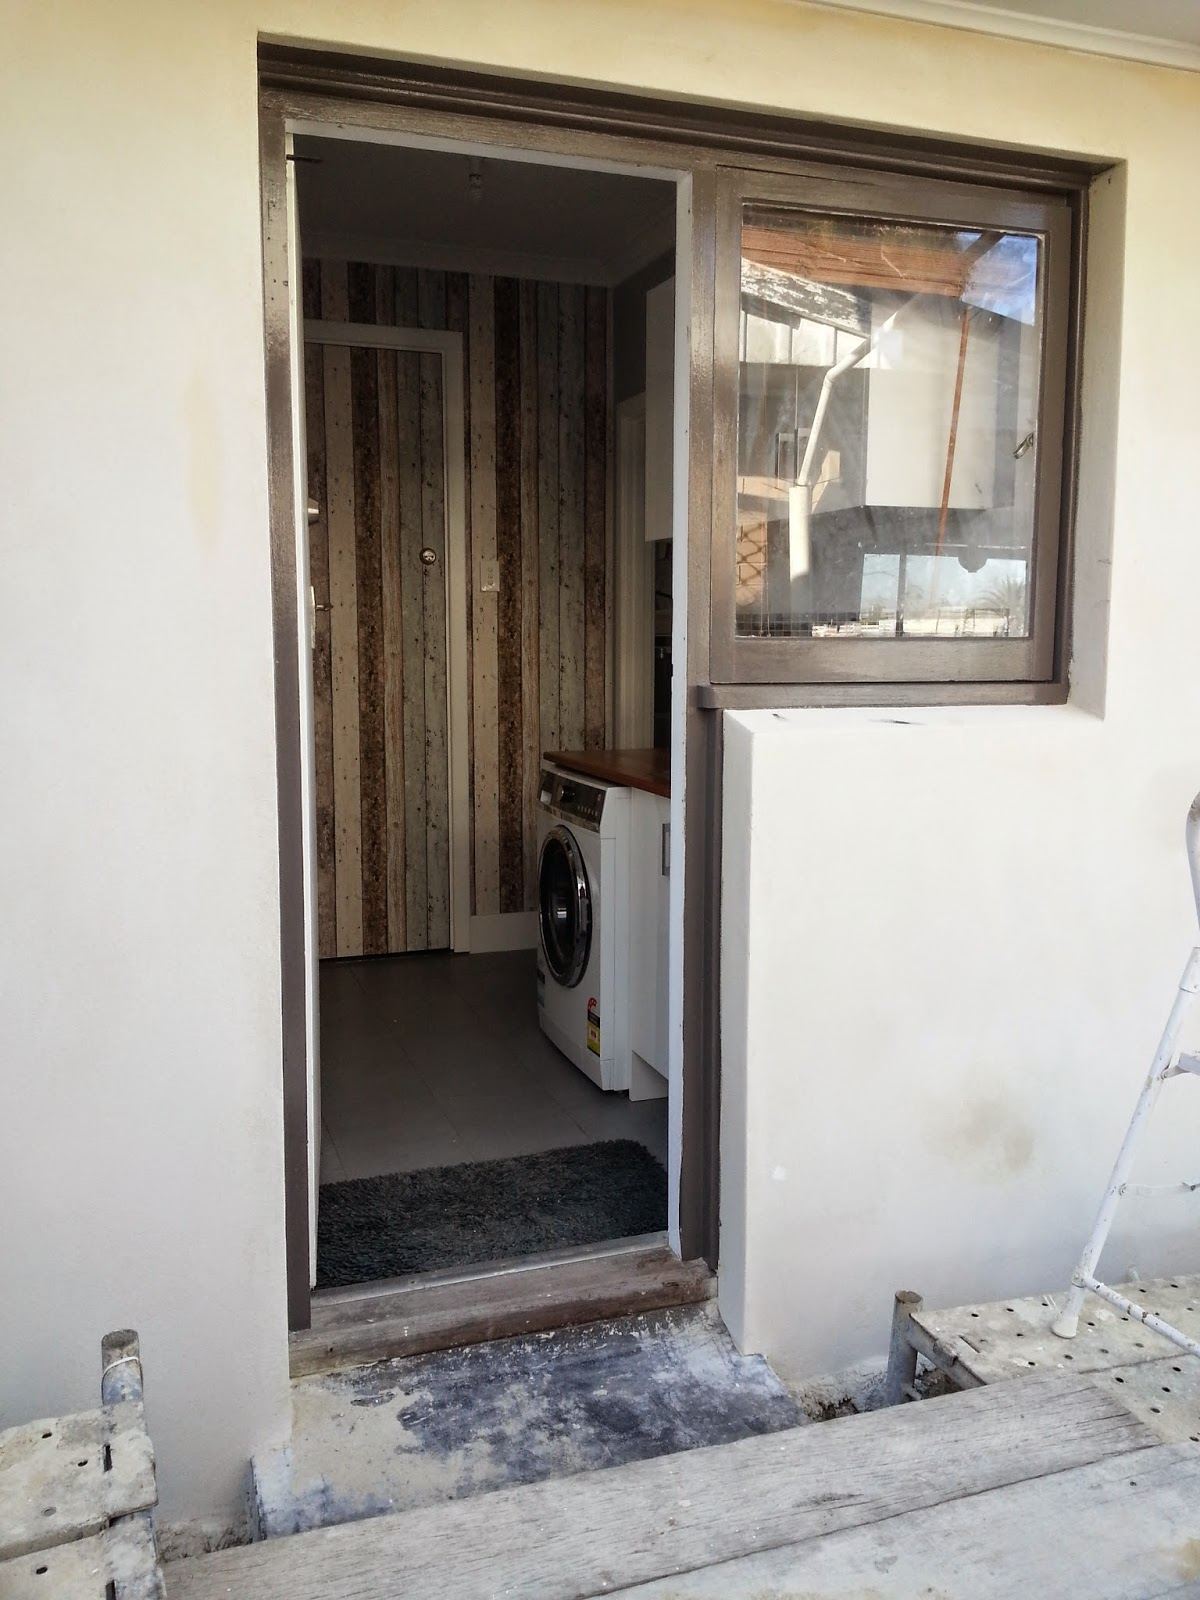 Jarrah Jungle Painting The Exterior Walls And Window Frames With Dulux Paint